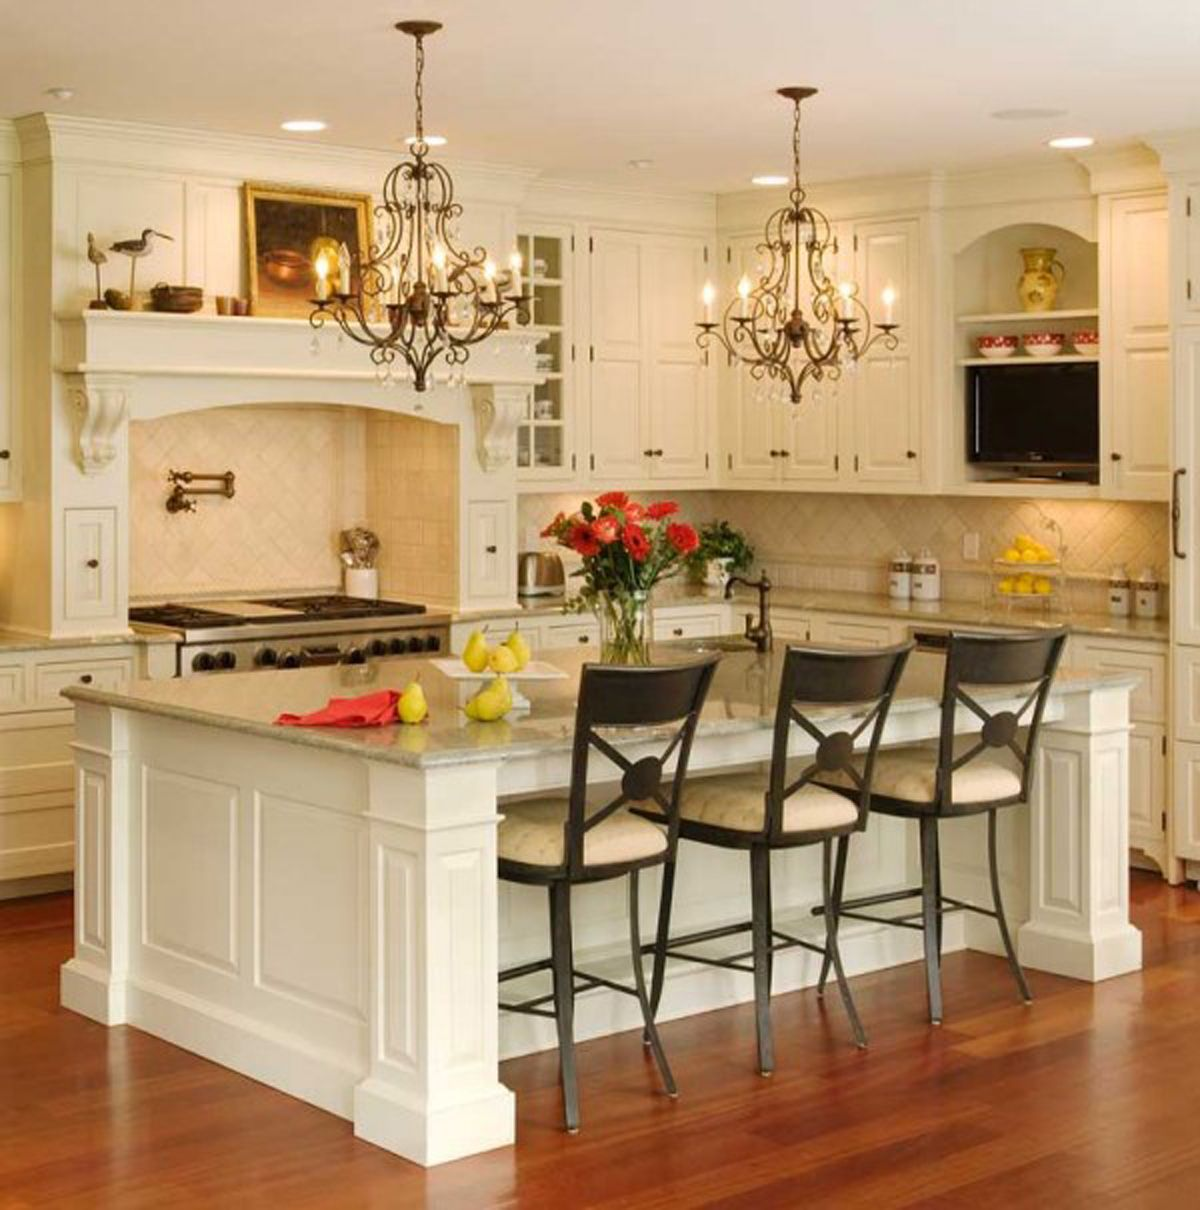 Kitchen ideas pictures traditional best kitchen design my home